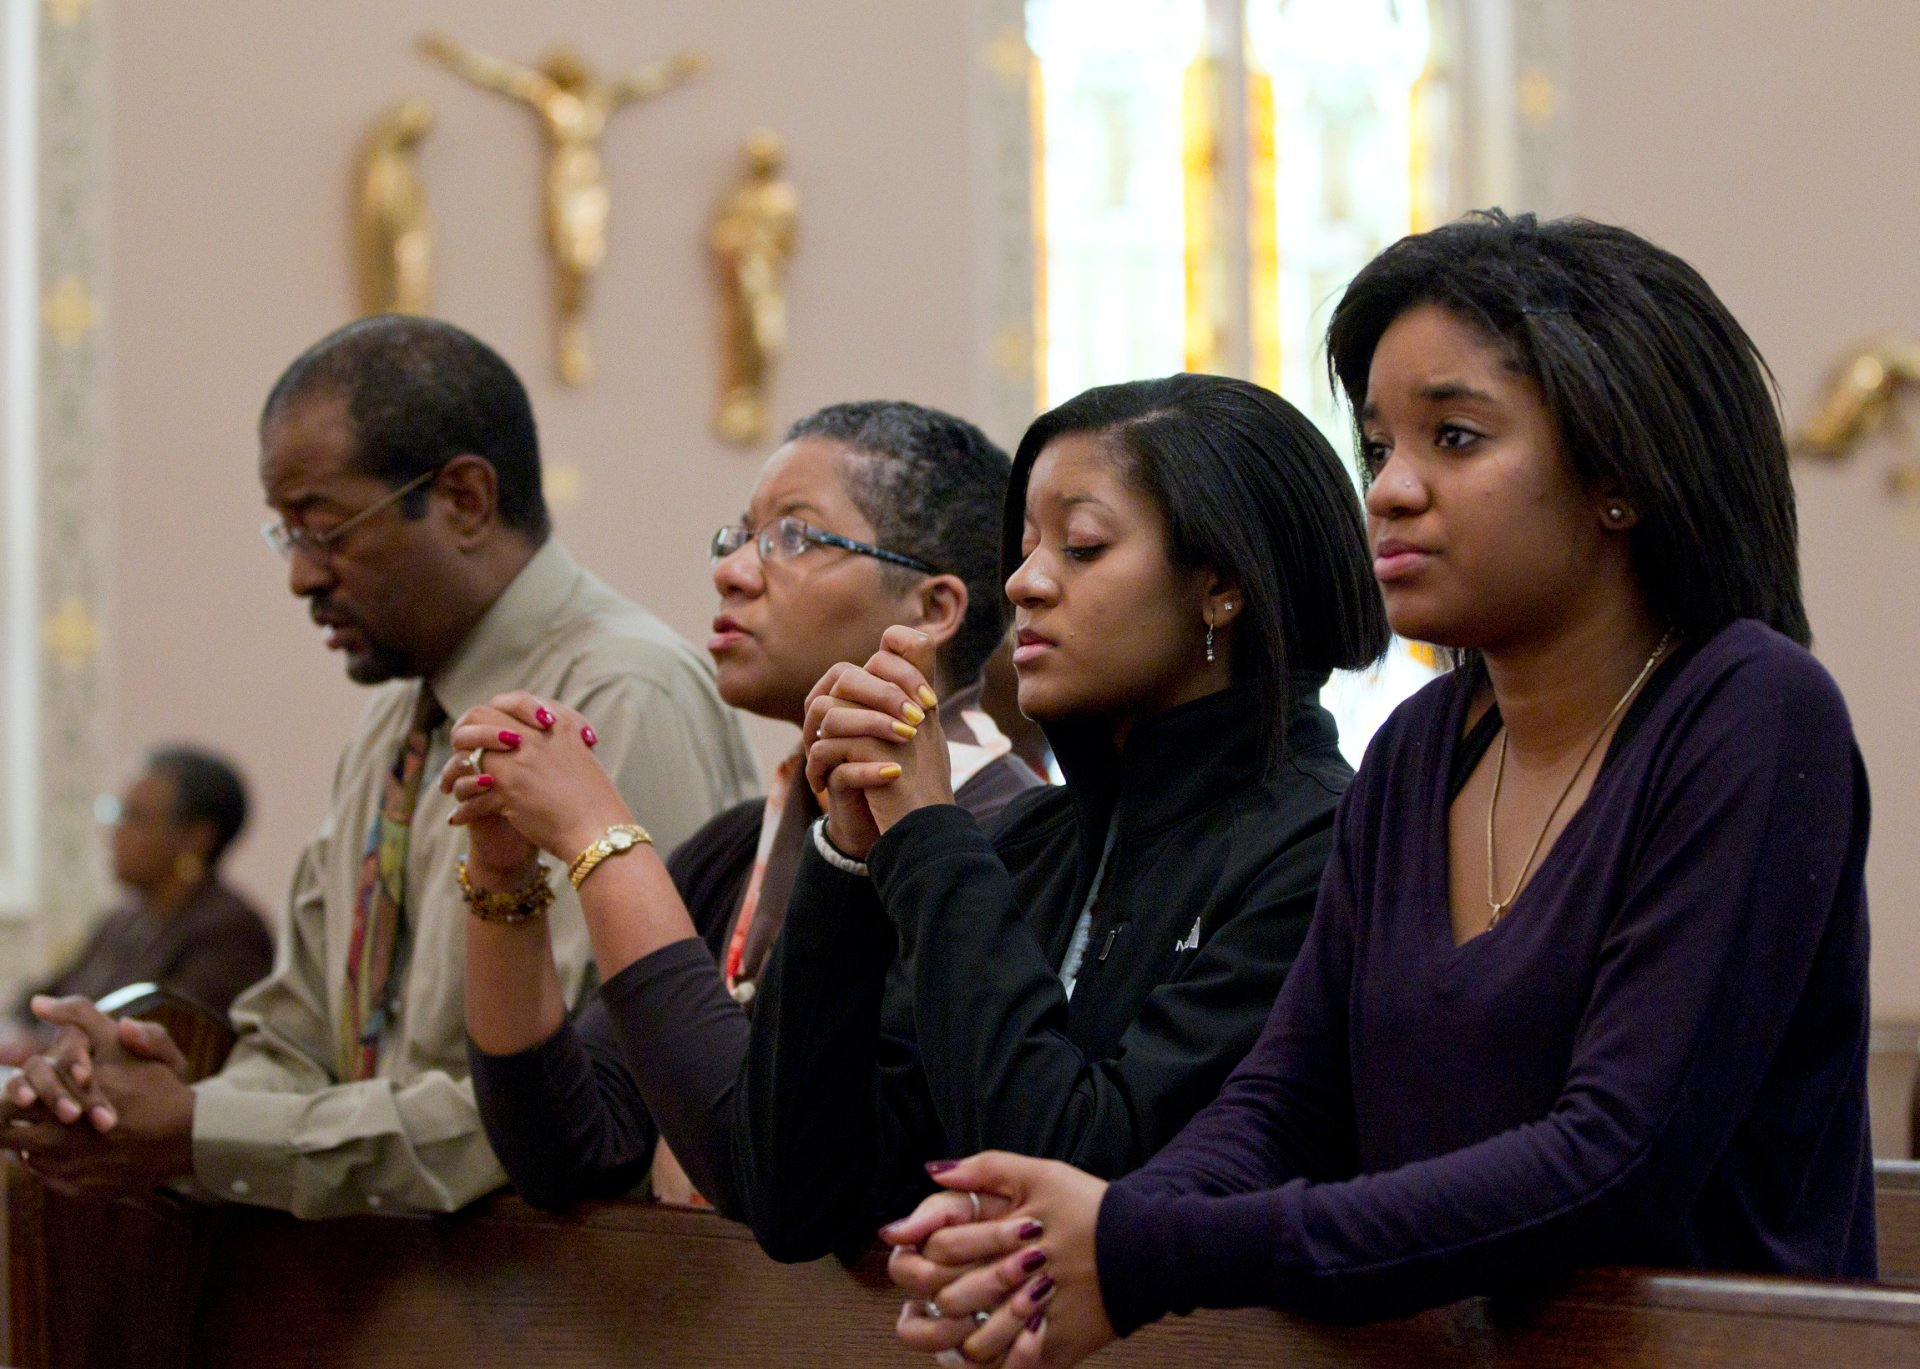 Why Millennials Should Go to Church (BET.com)